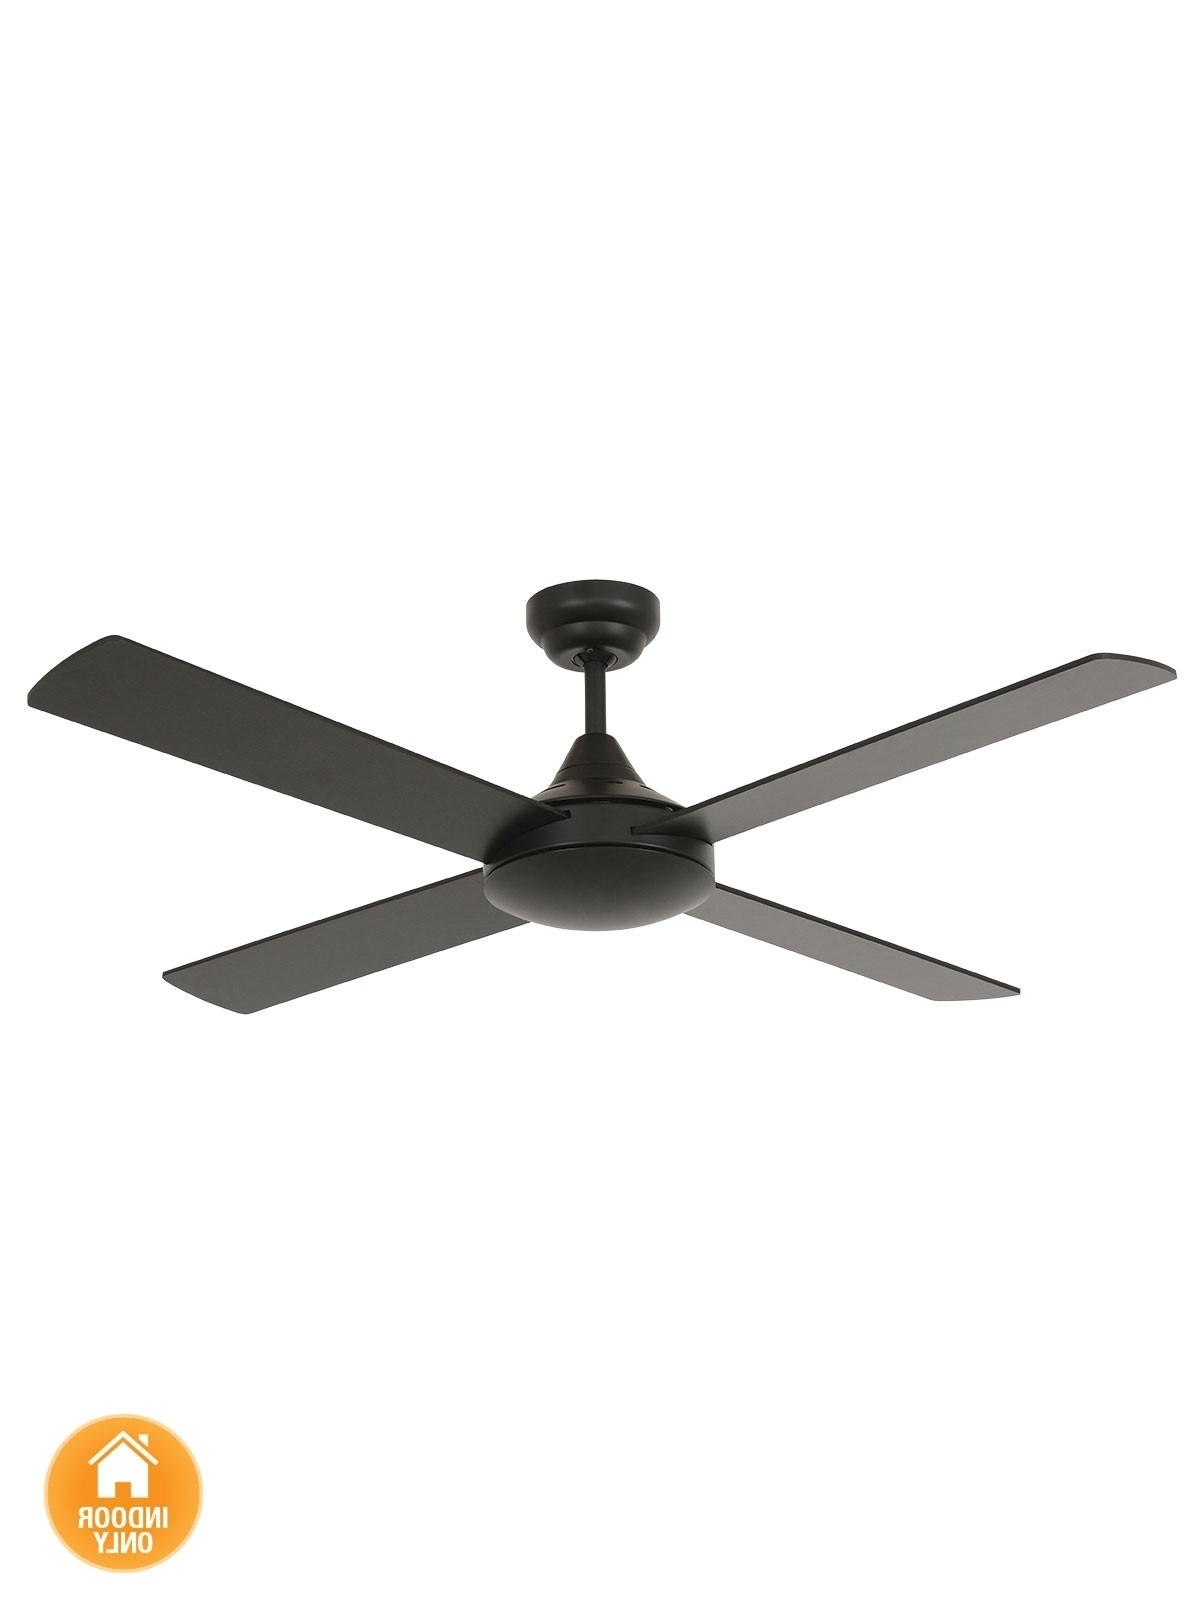 Beacon Lighting Throughout Well Known Sunshine Coast Outdoor Ceiling Fans (View 1 of 20)